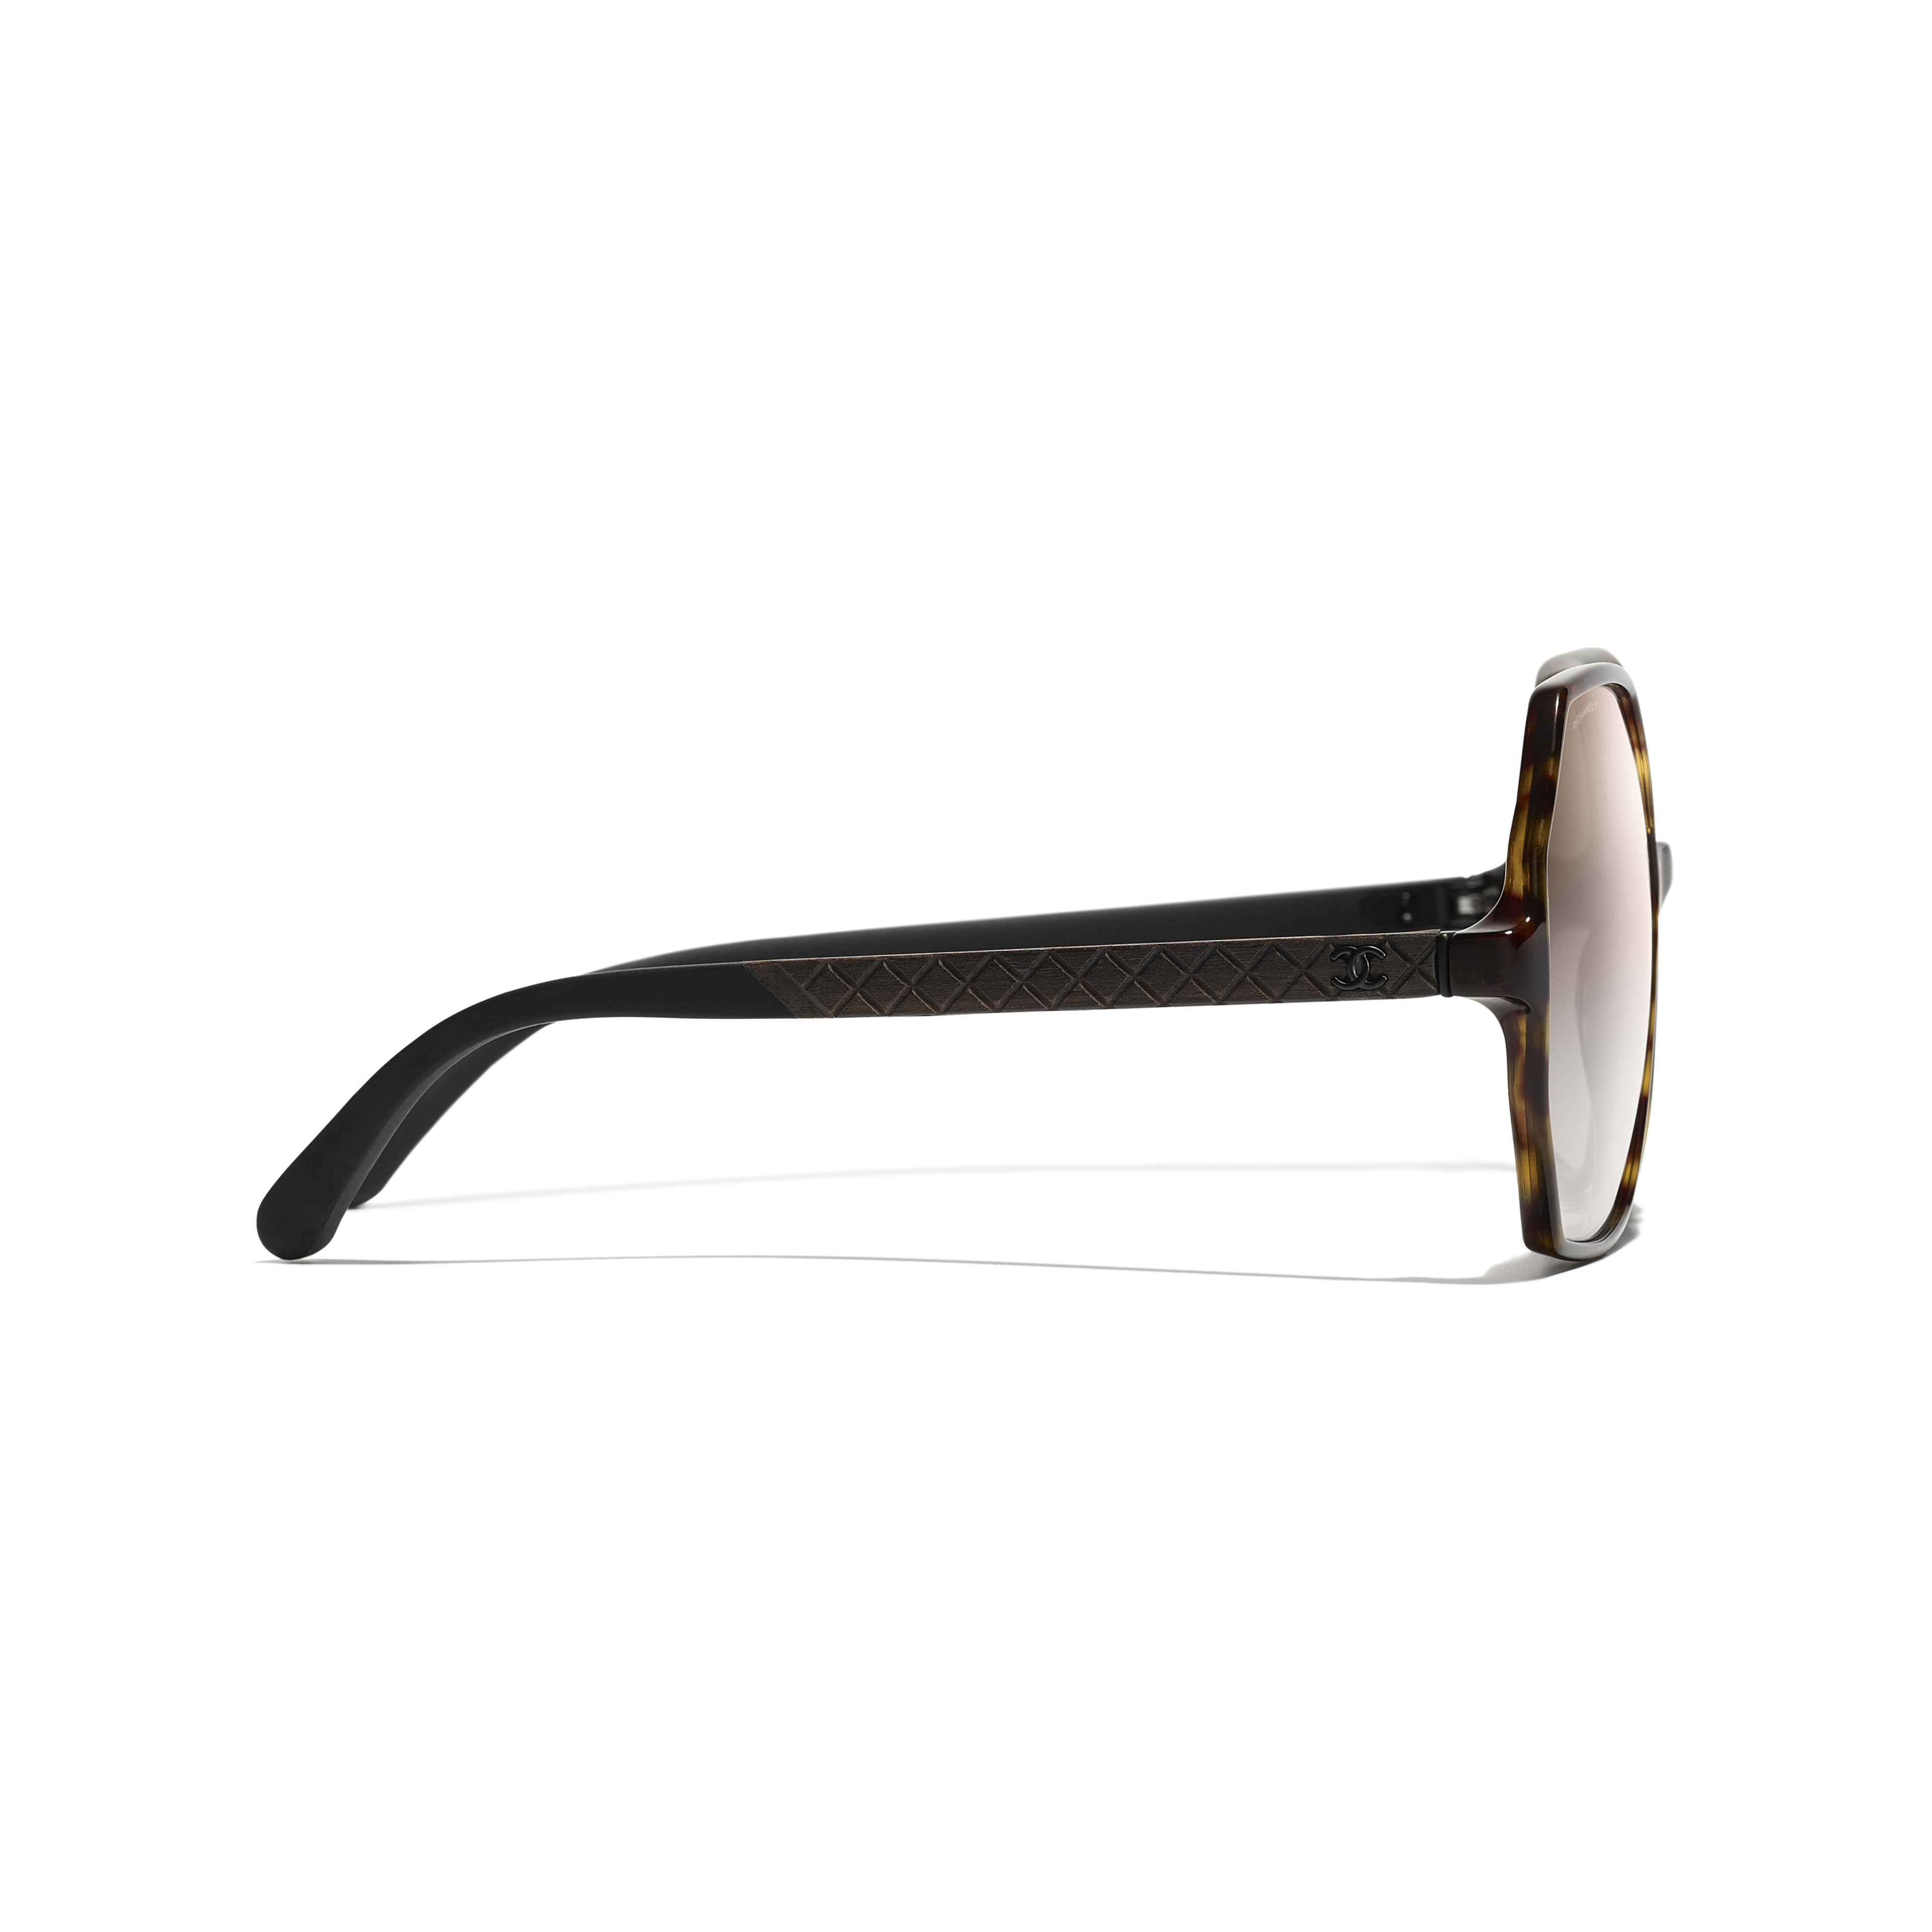 Round Sunglasses - Dark Tortoise - Acetate, Wood & Rubber - Other view - see full sized version